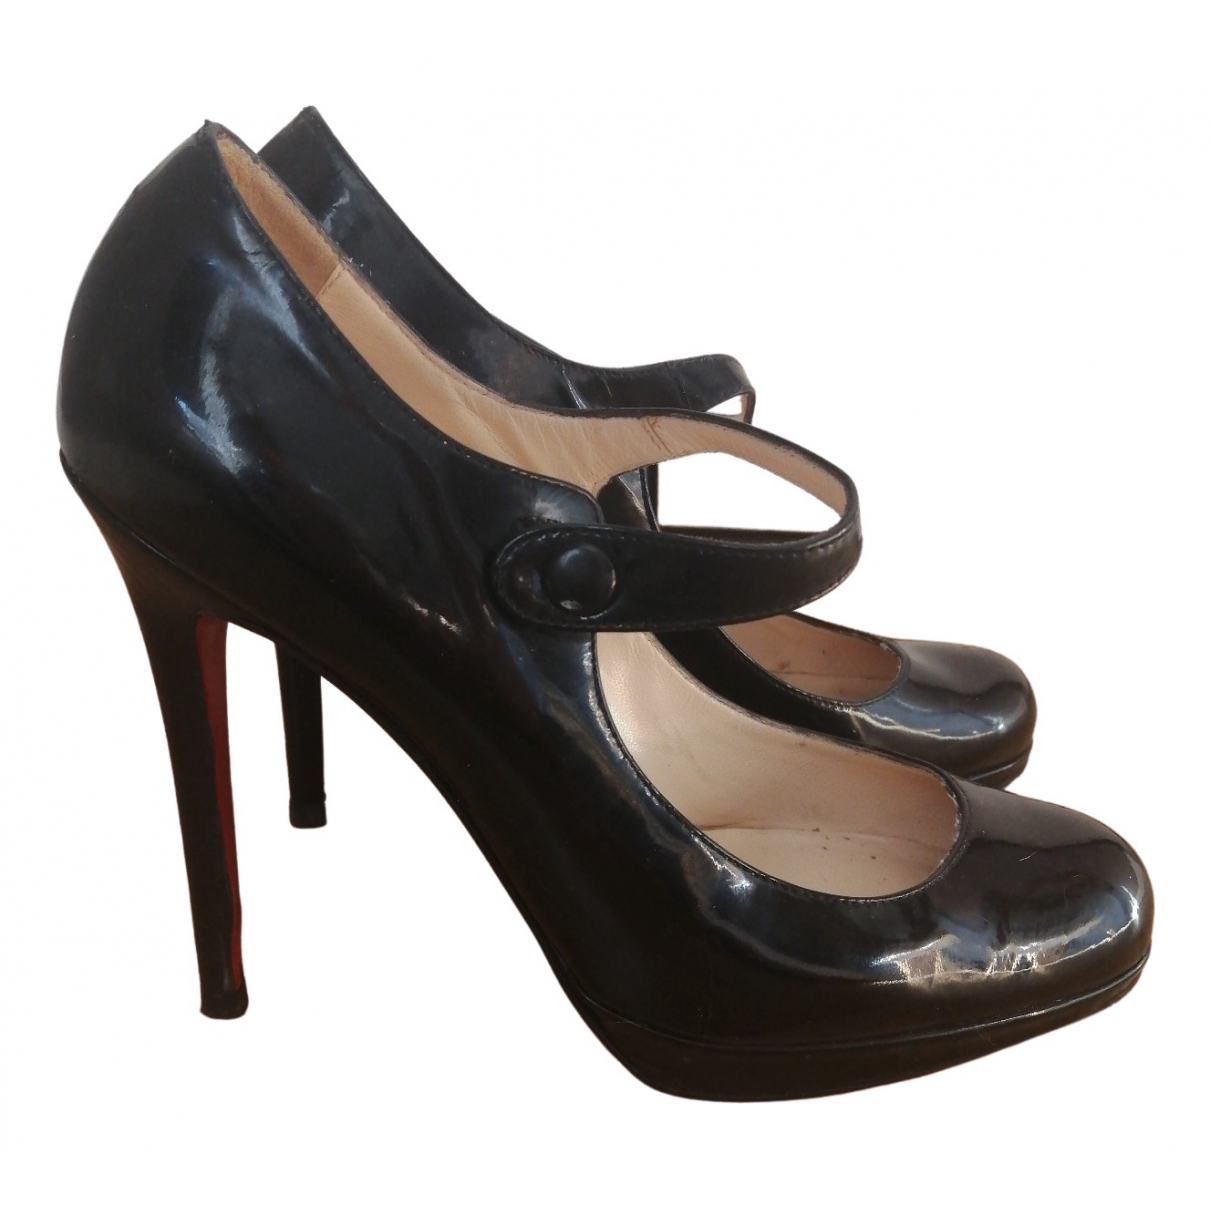 Christian Louboutin \N Black Patent leather Heels for Women 38 EU